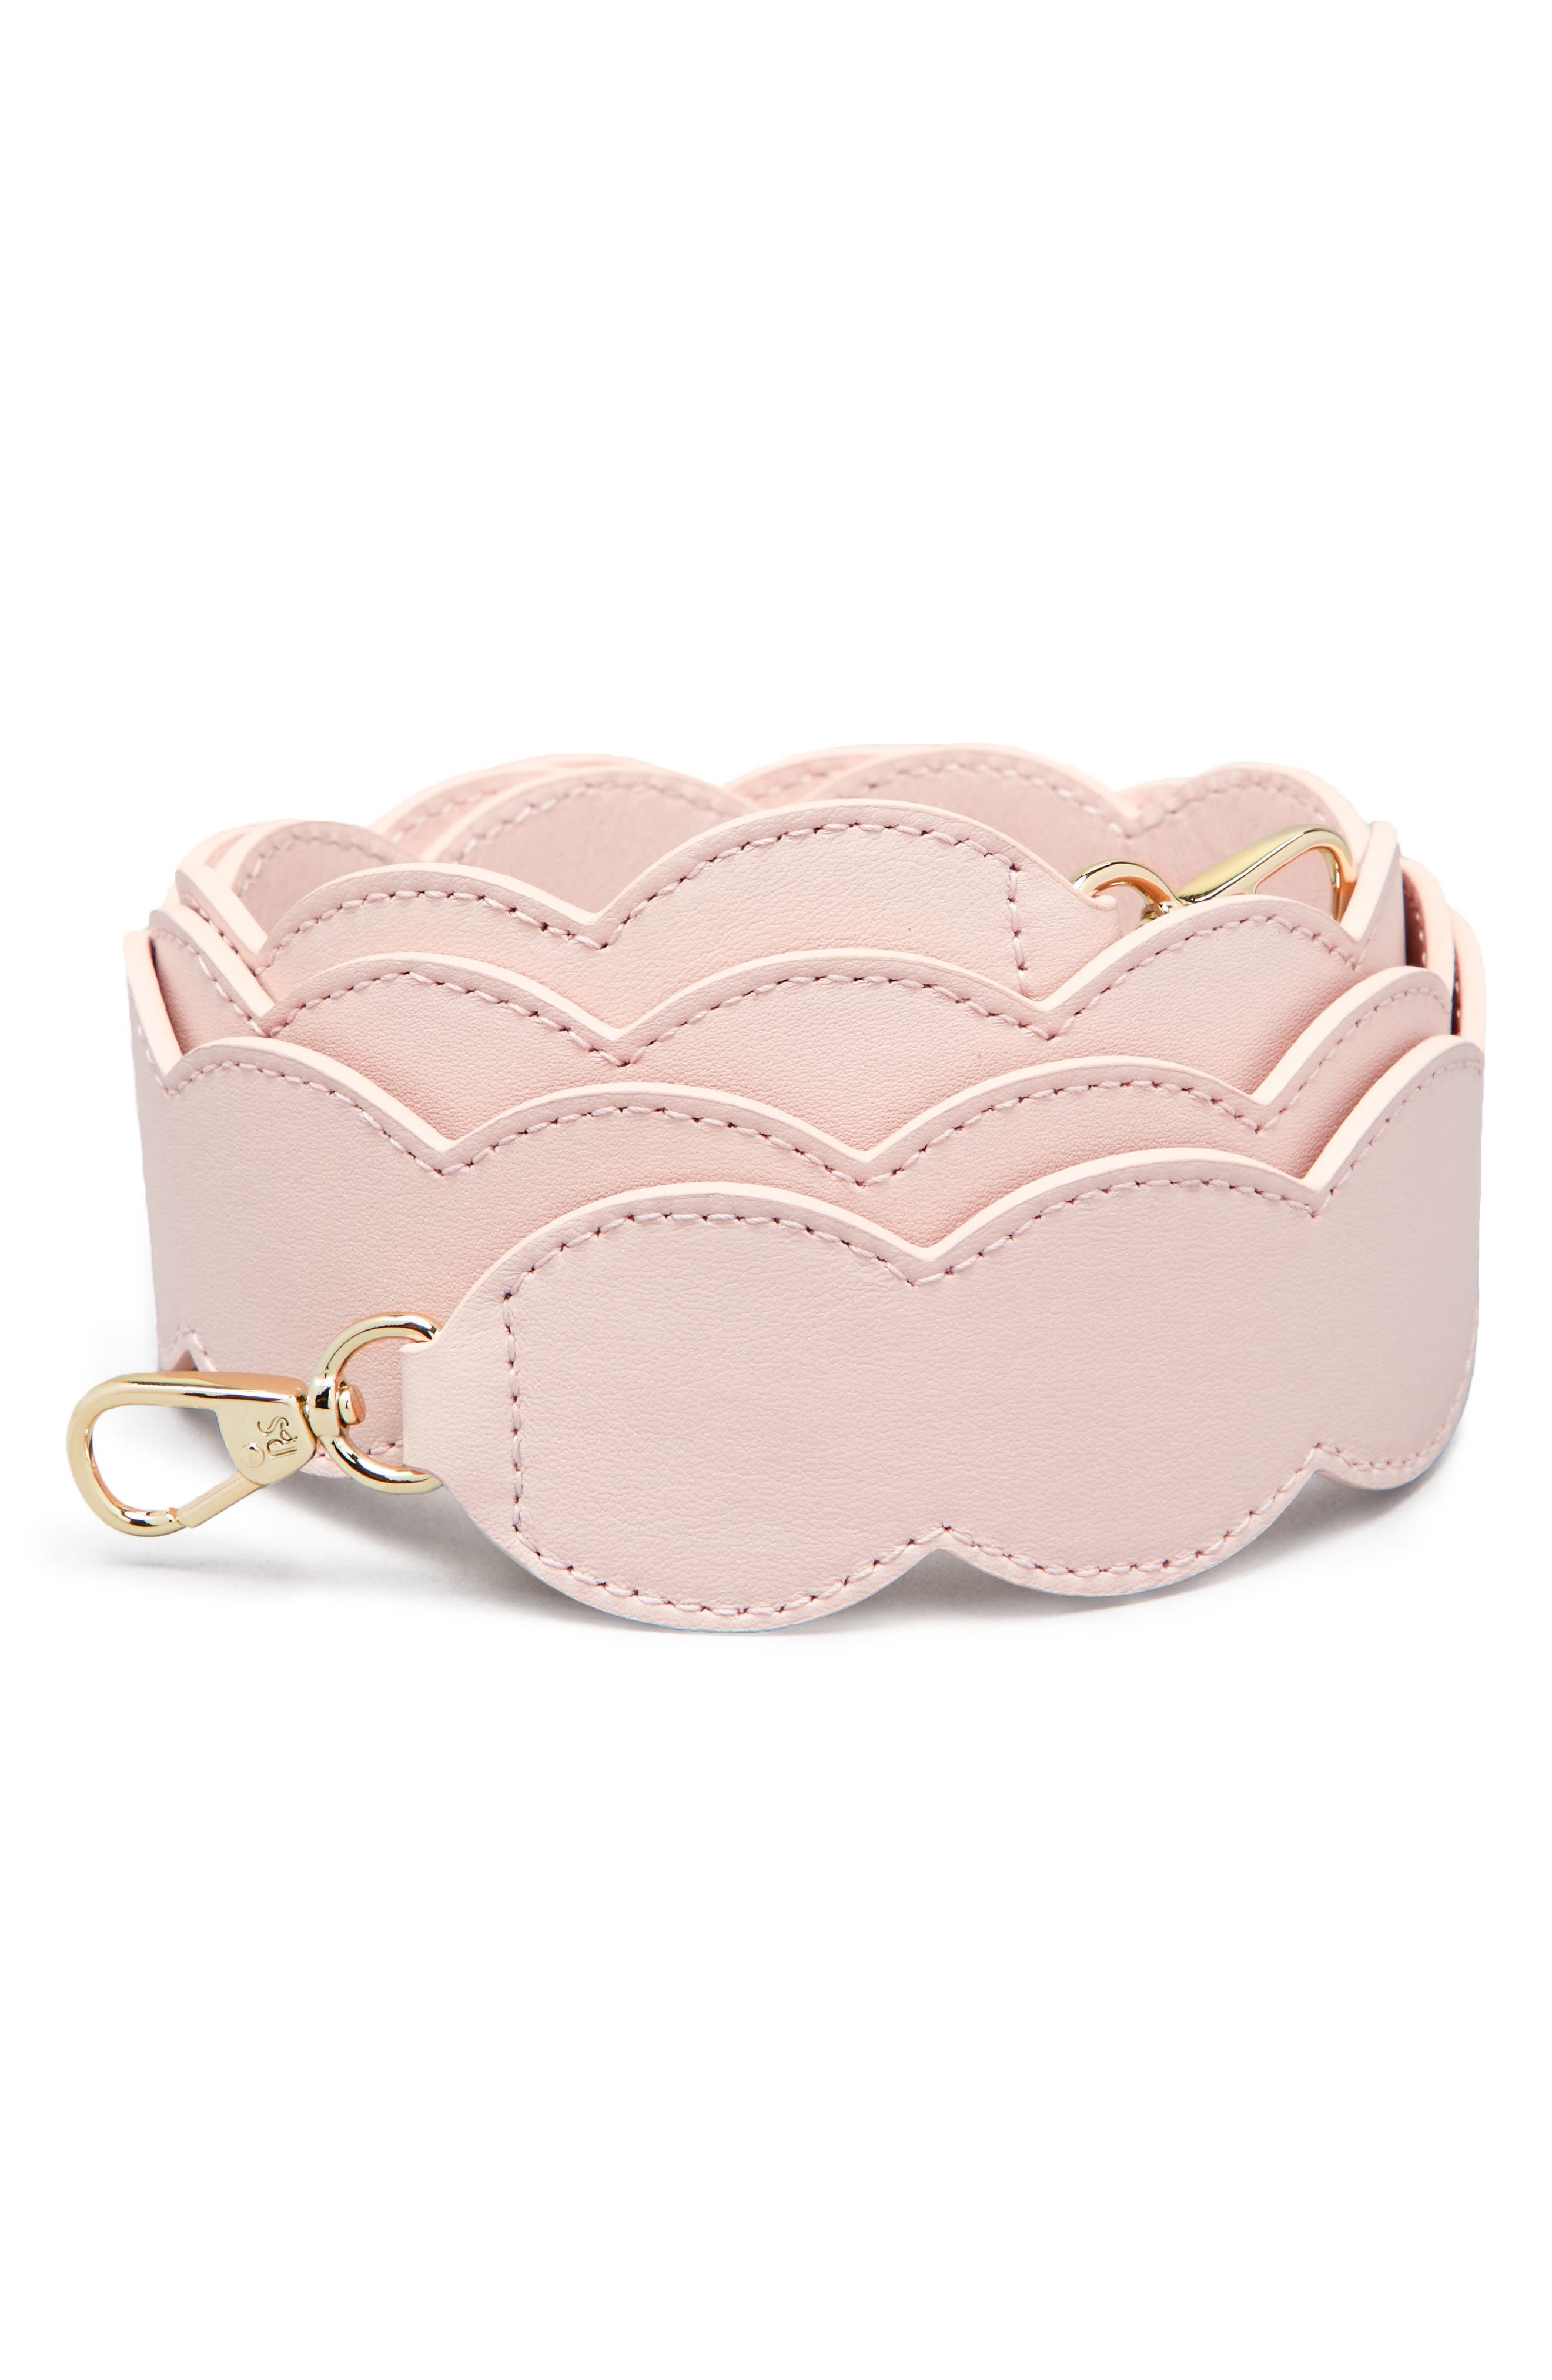 Scalloped Strap,                             Main thumbnail 1, color,                             Cotton Candy